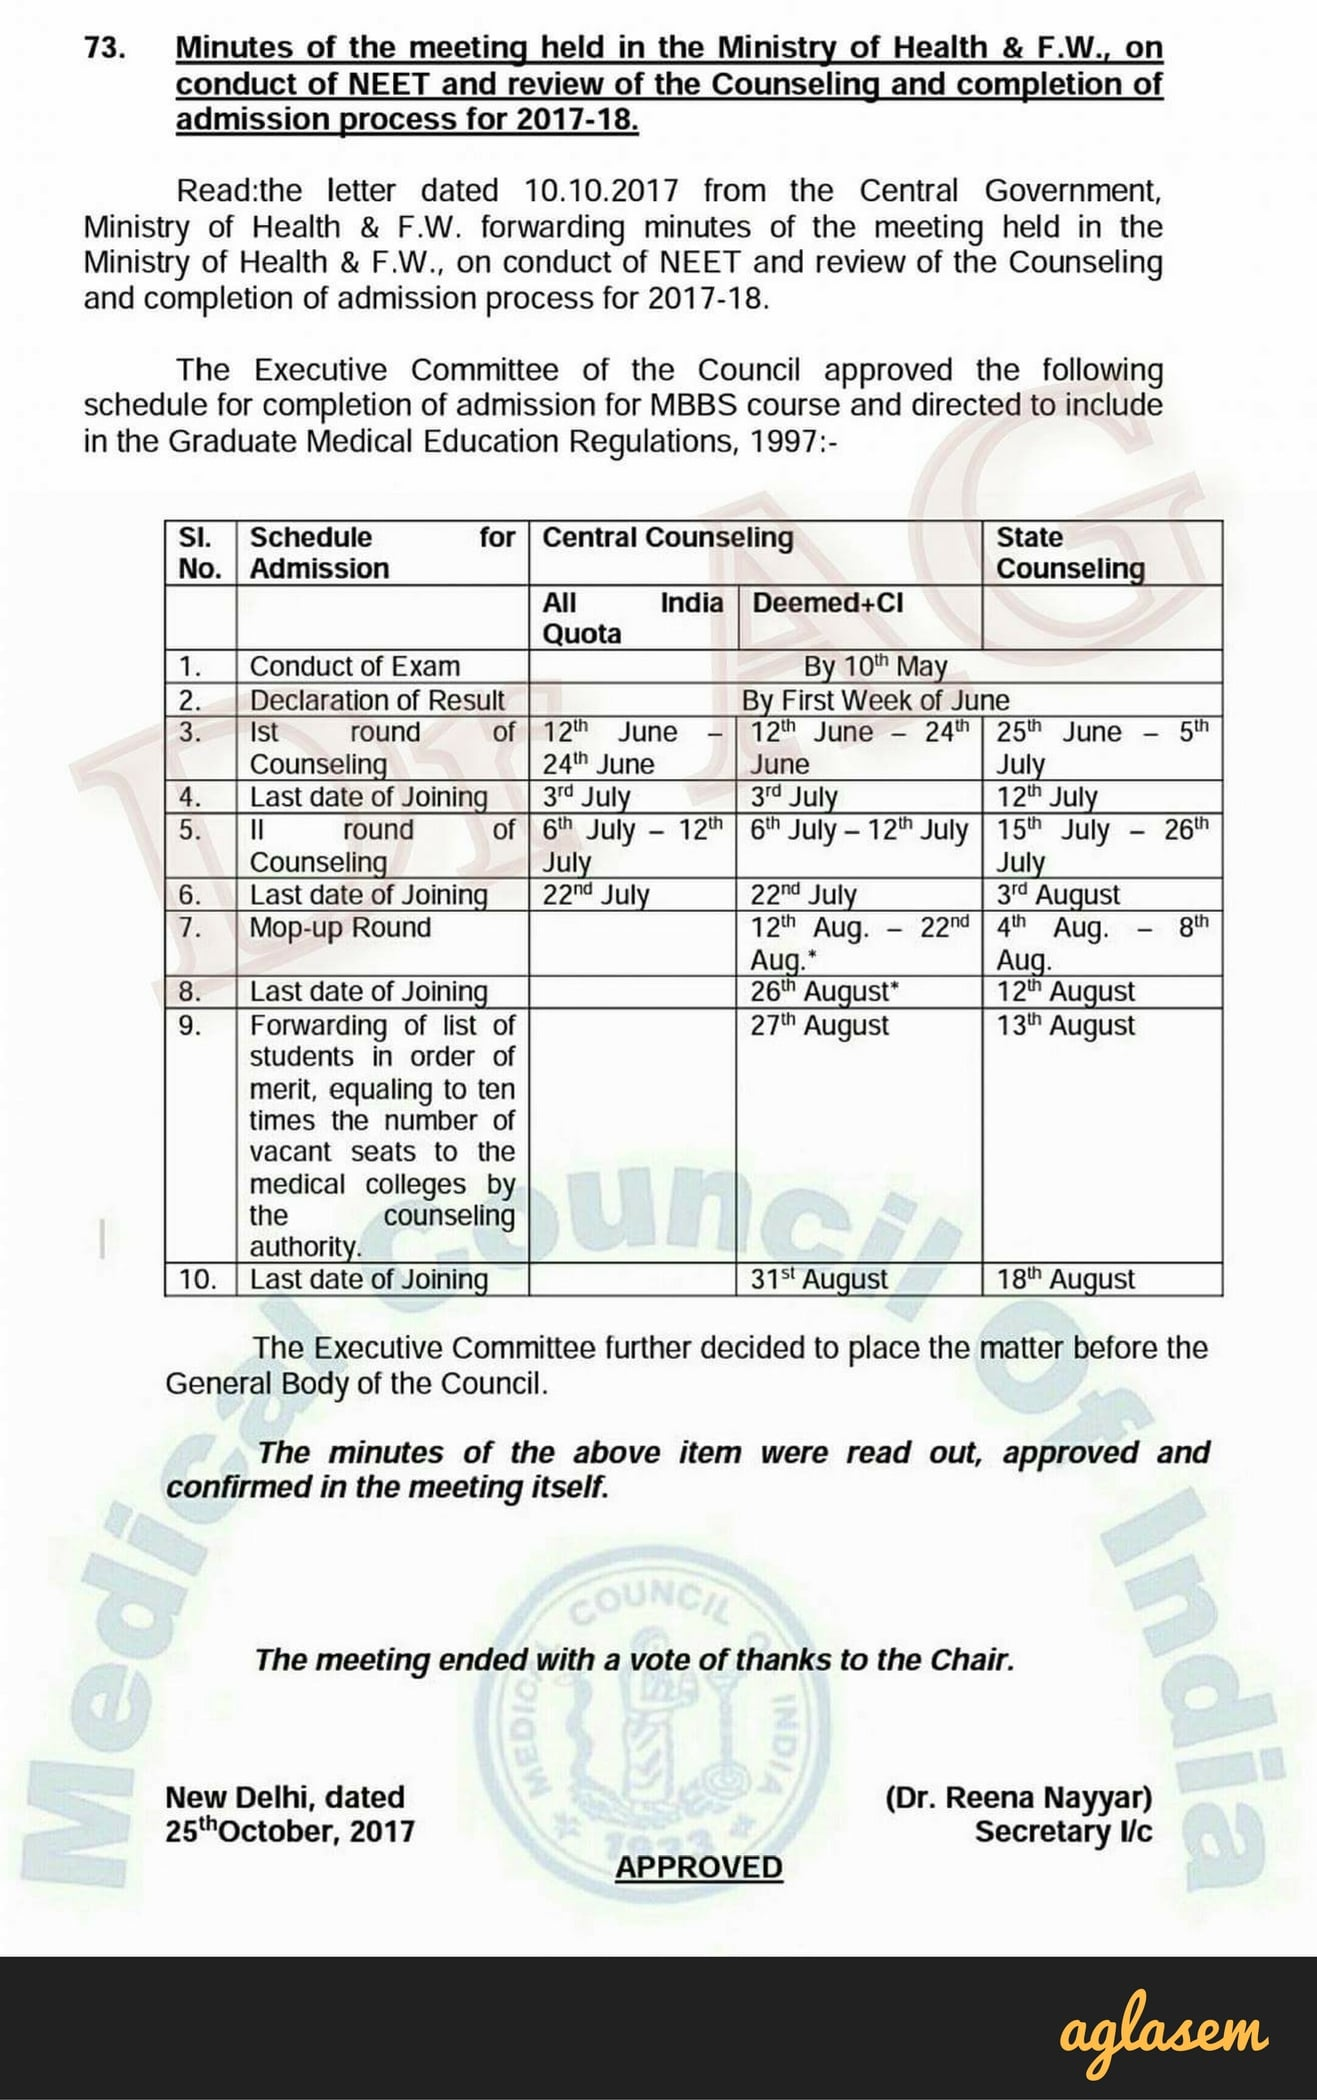 """NEET 2018 Exam Date """"by 10 May 2018"""", and Not necessarily """"on 10 May 2018"""""""